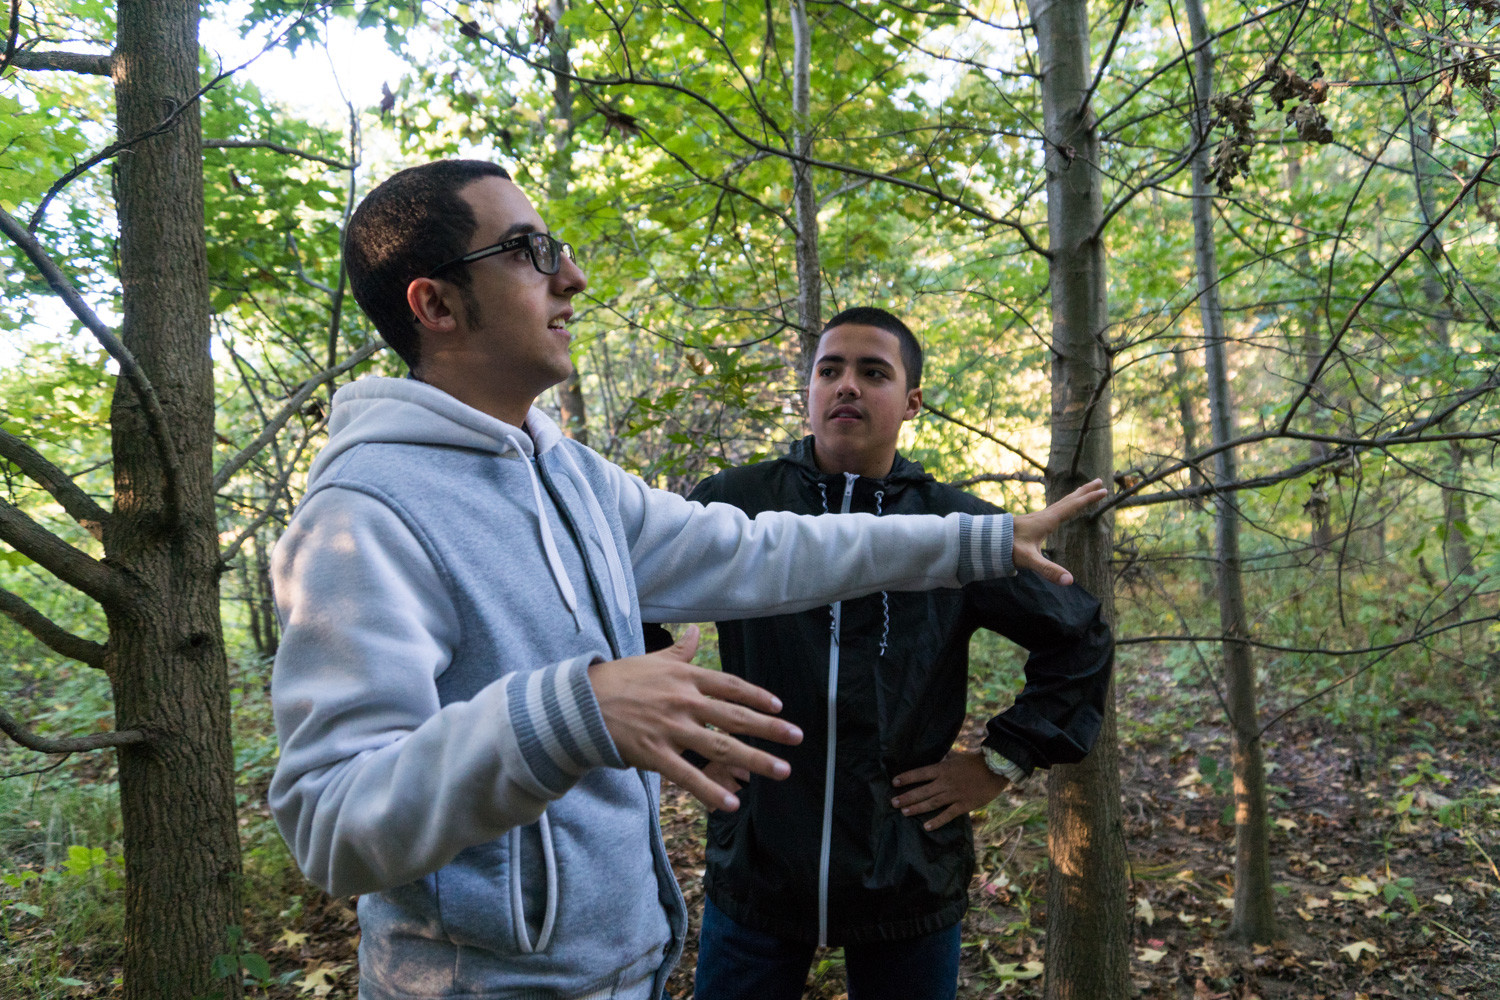 Enzo Ramirez, left, talks about the work he and his brother Omar did as interns in Van Cortlandt Park, which included, among other things, constructing birdhouses.